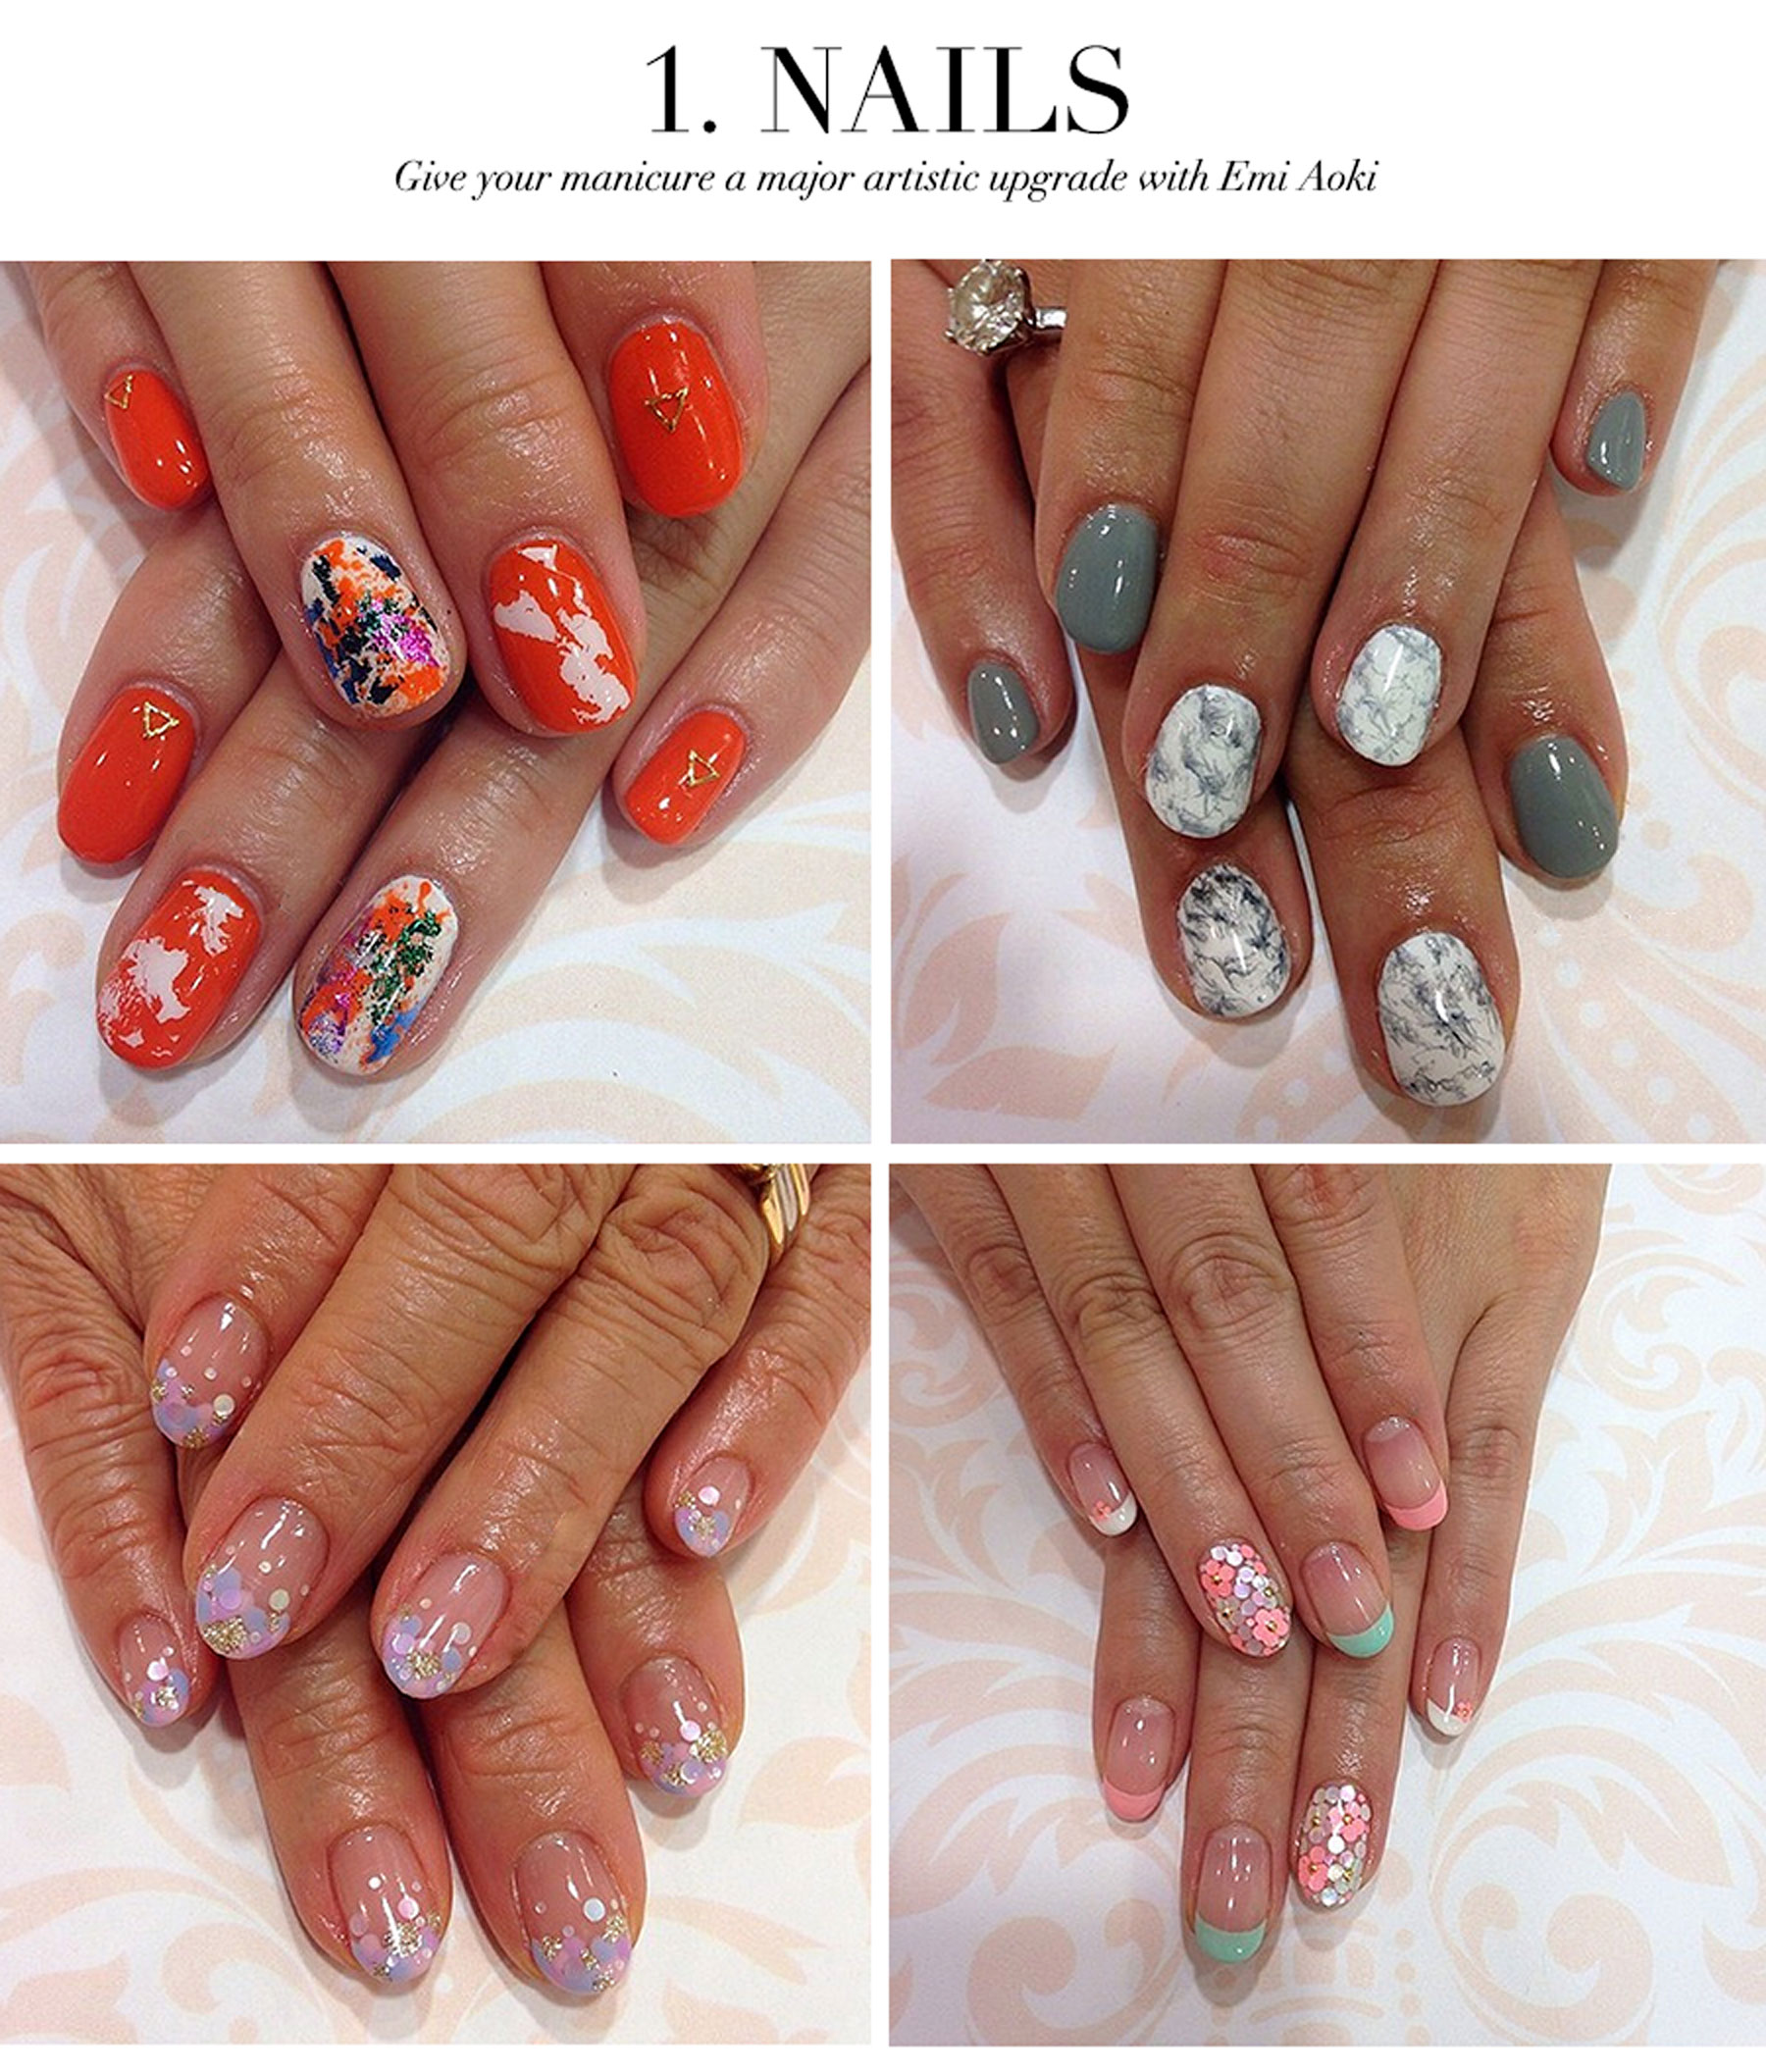 Ceci Johnson's Treat-Yourself Picks - Nails - Give your manicure a major artistic upgrade with Emi Aoki